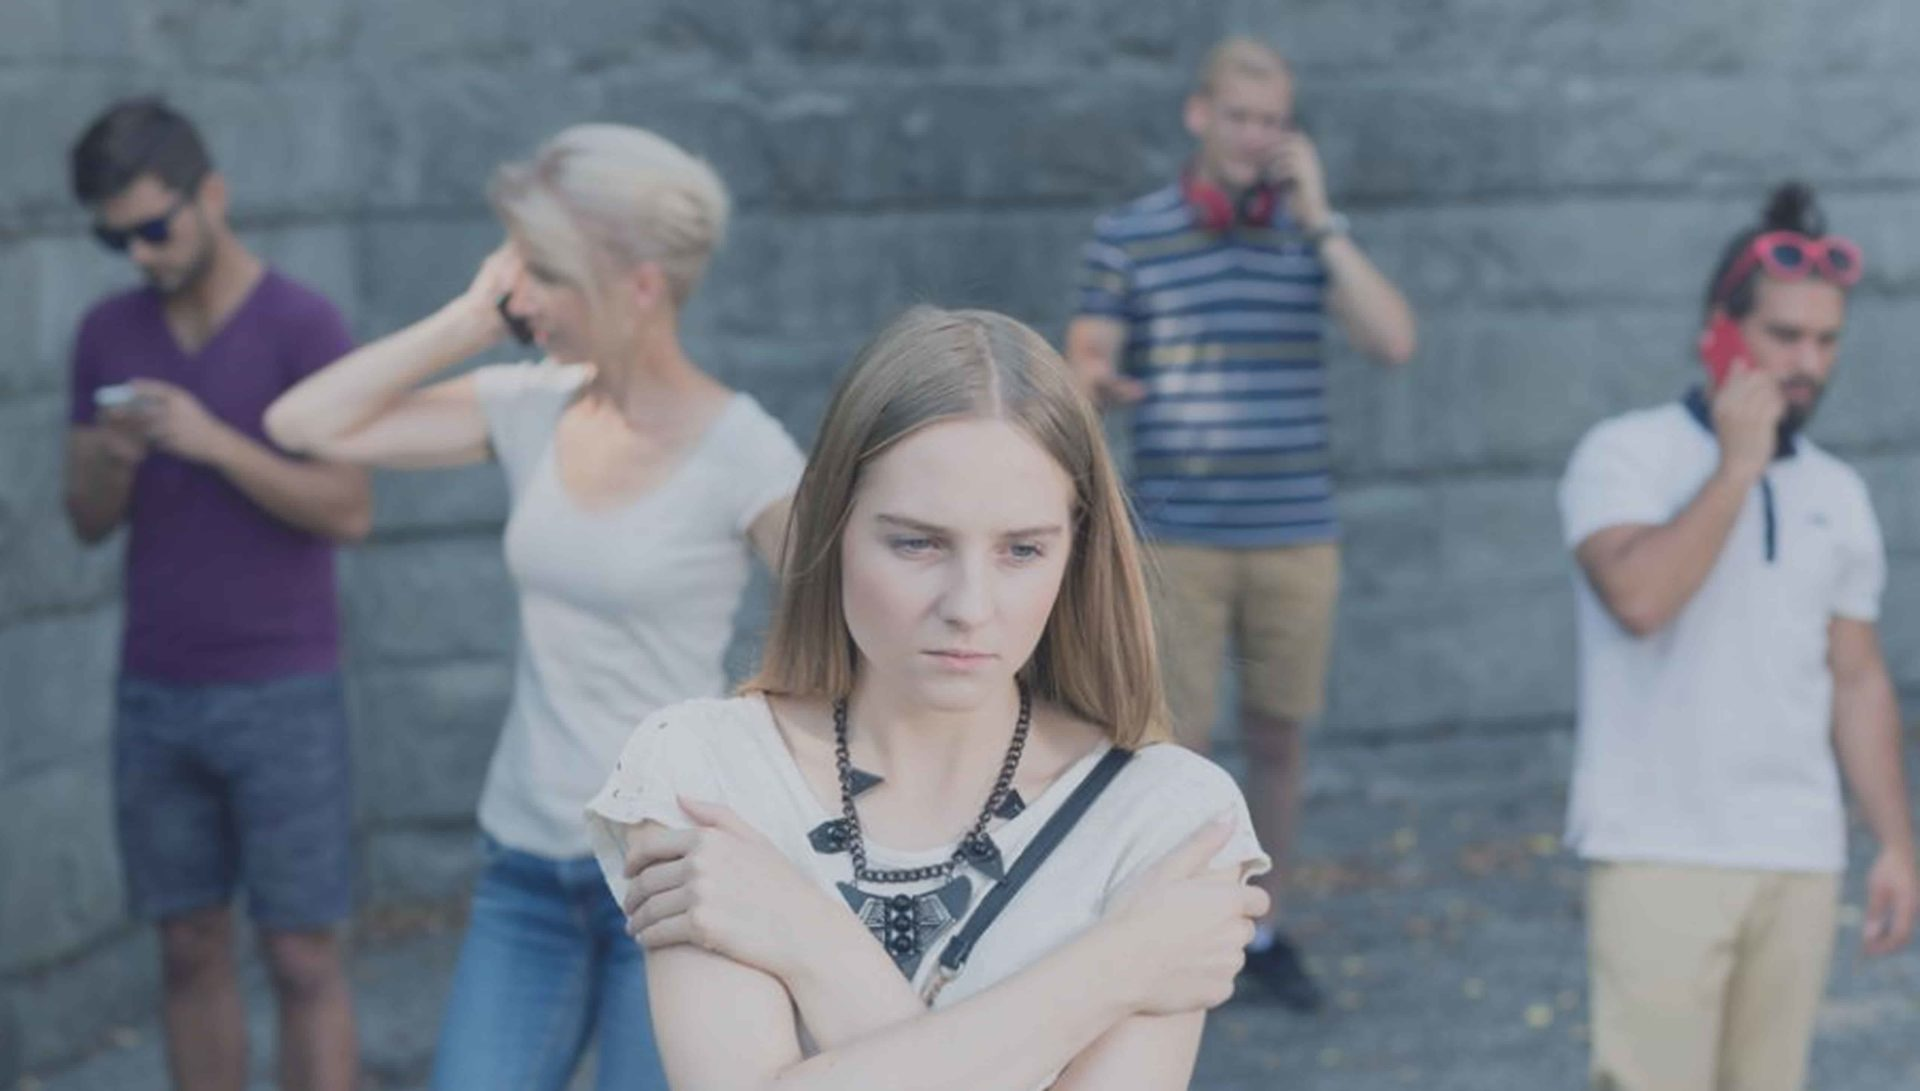 Adolescent Social Anxiety